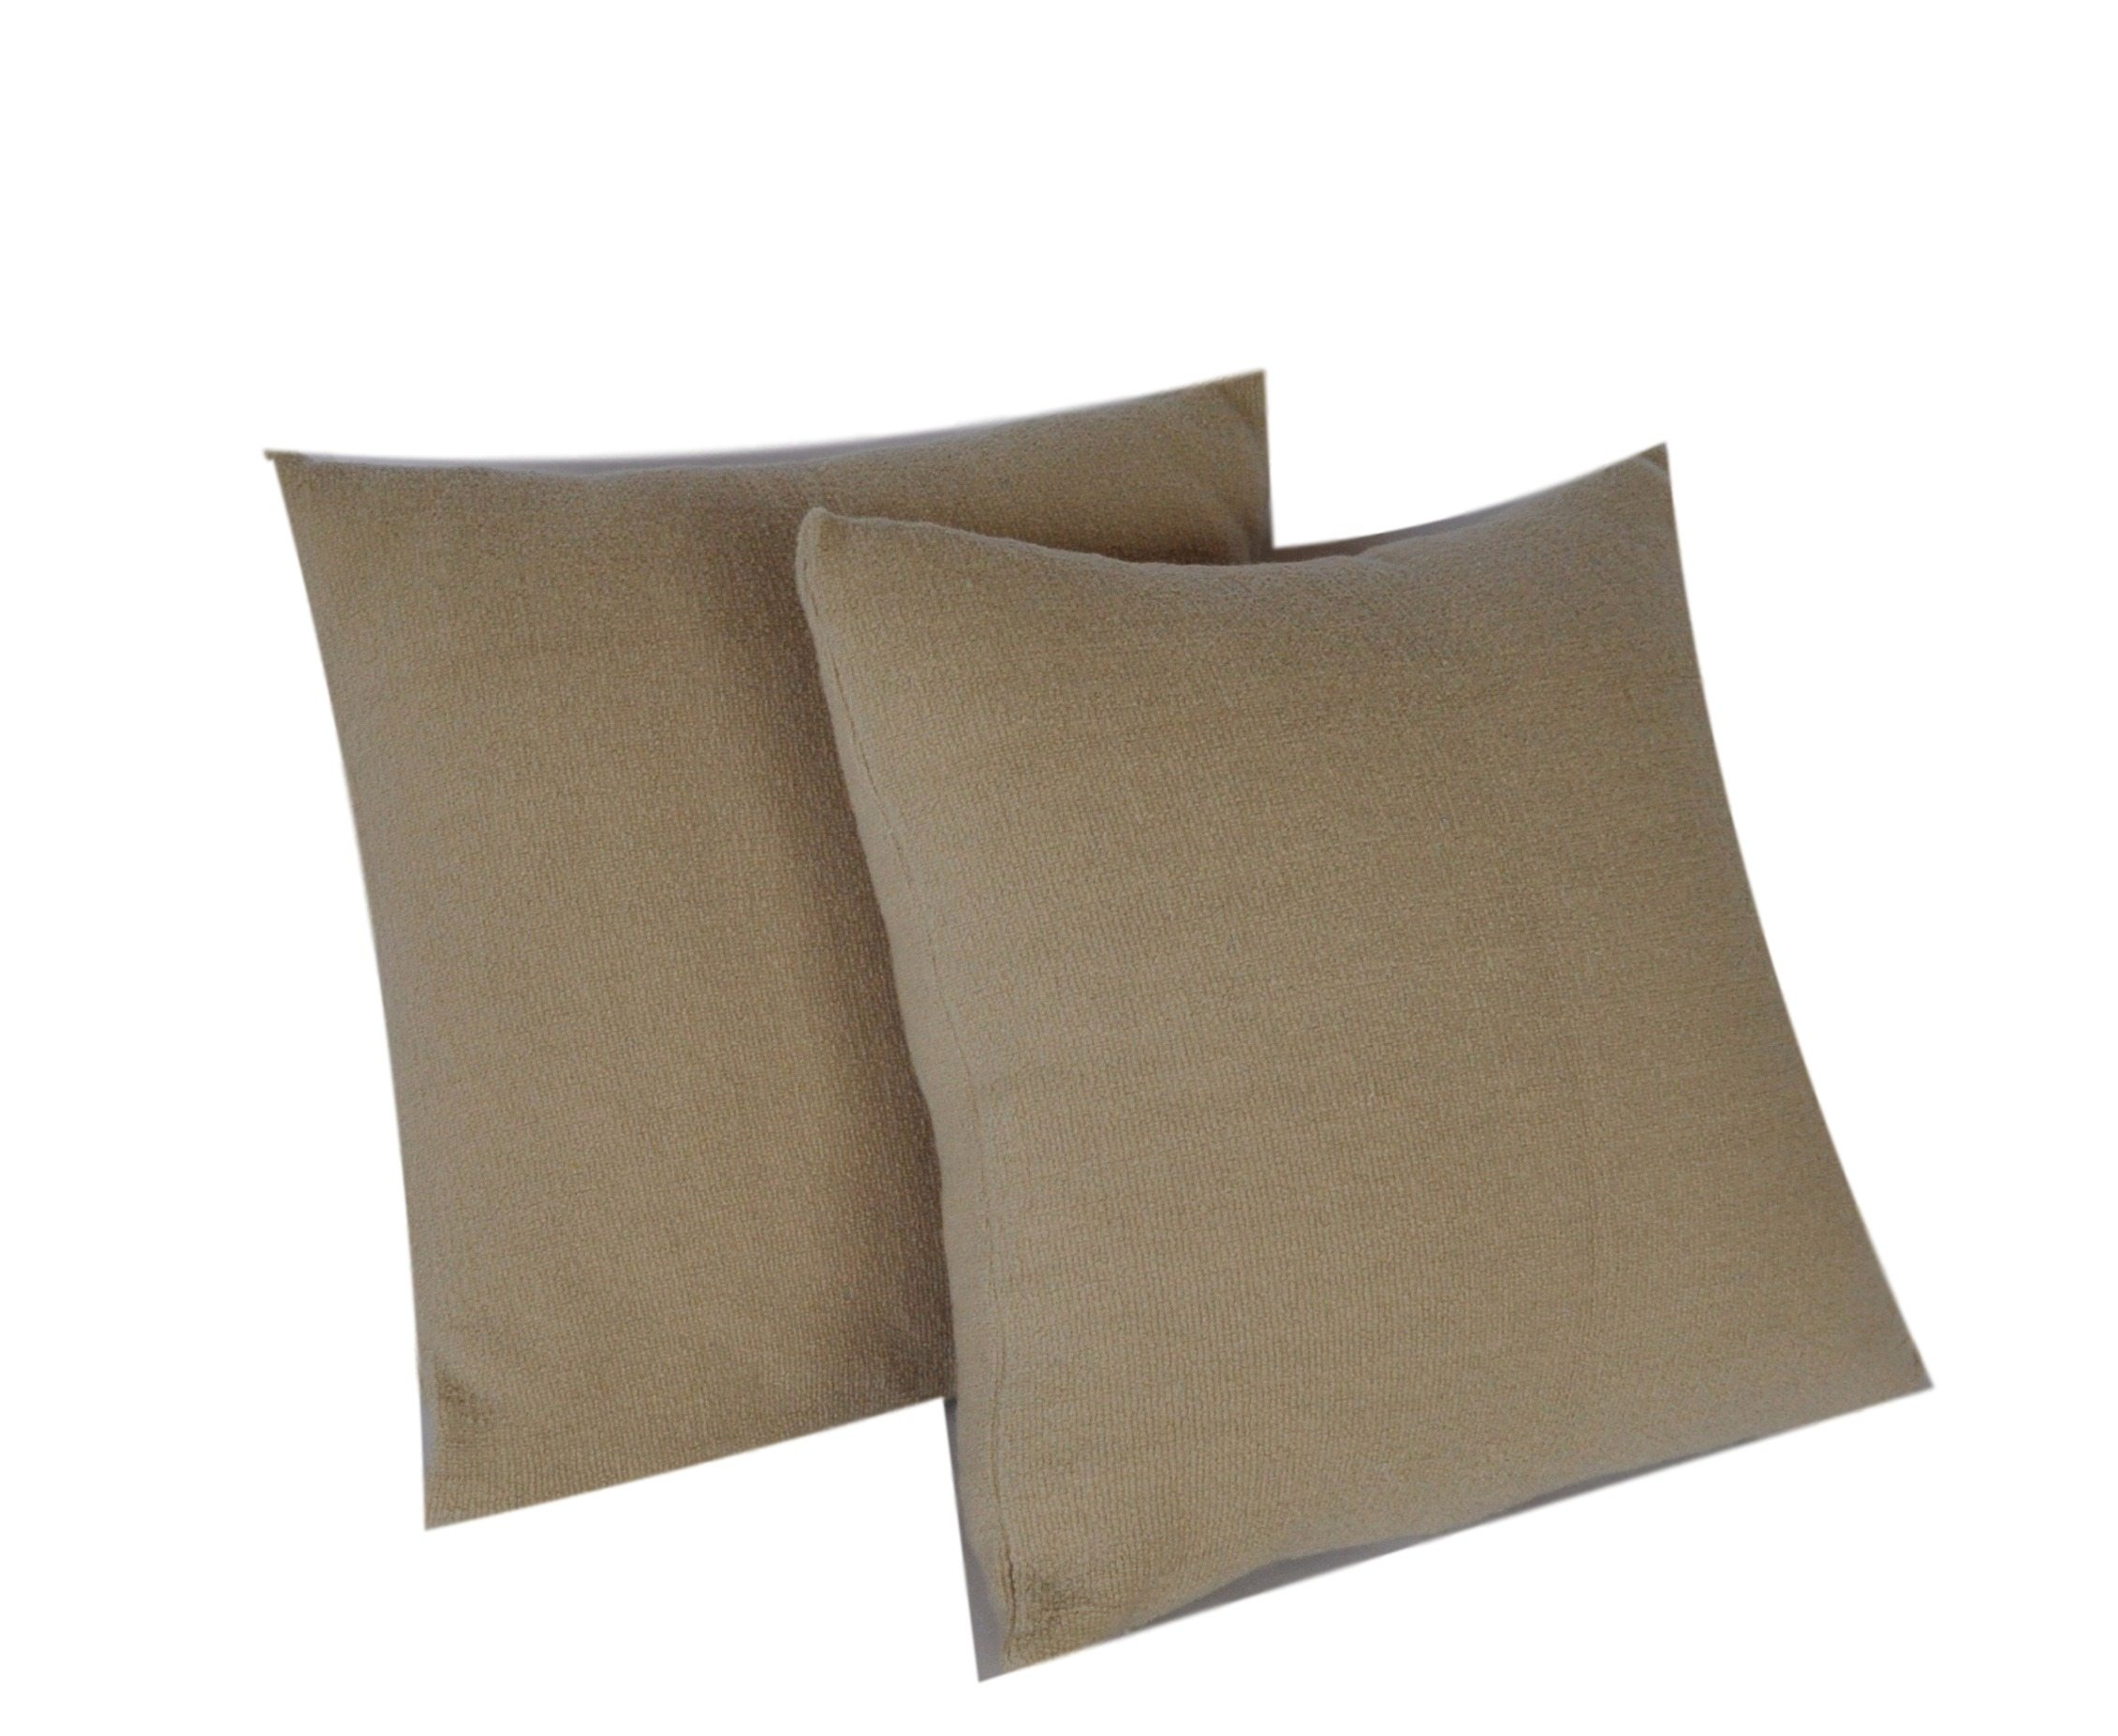 set of two outdoor pillow slipcovers for 18 x 18 pillow inserts